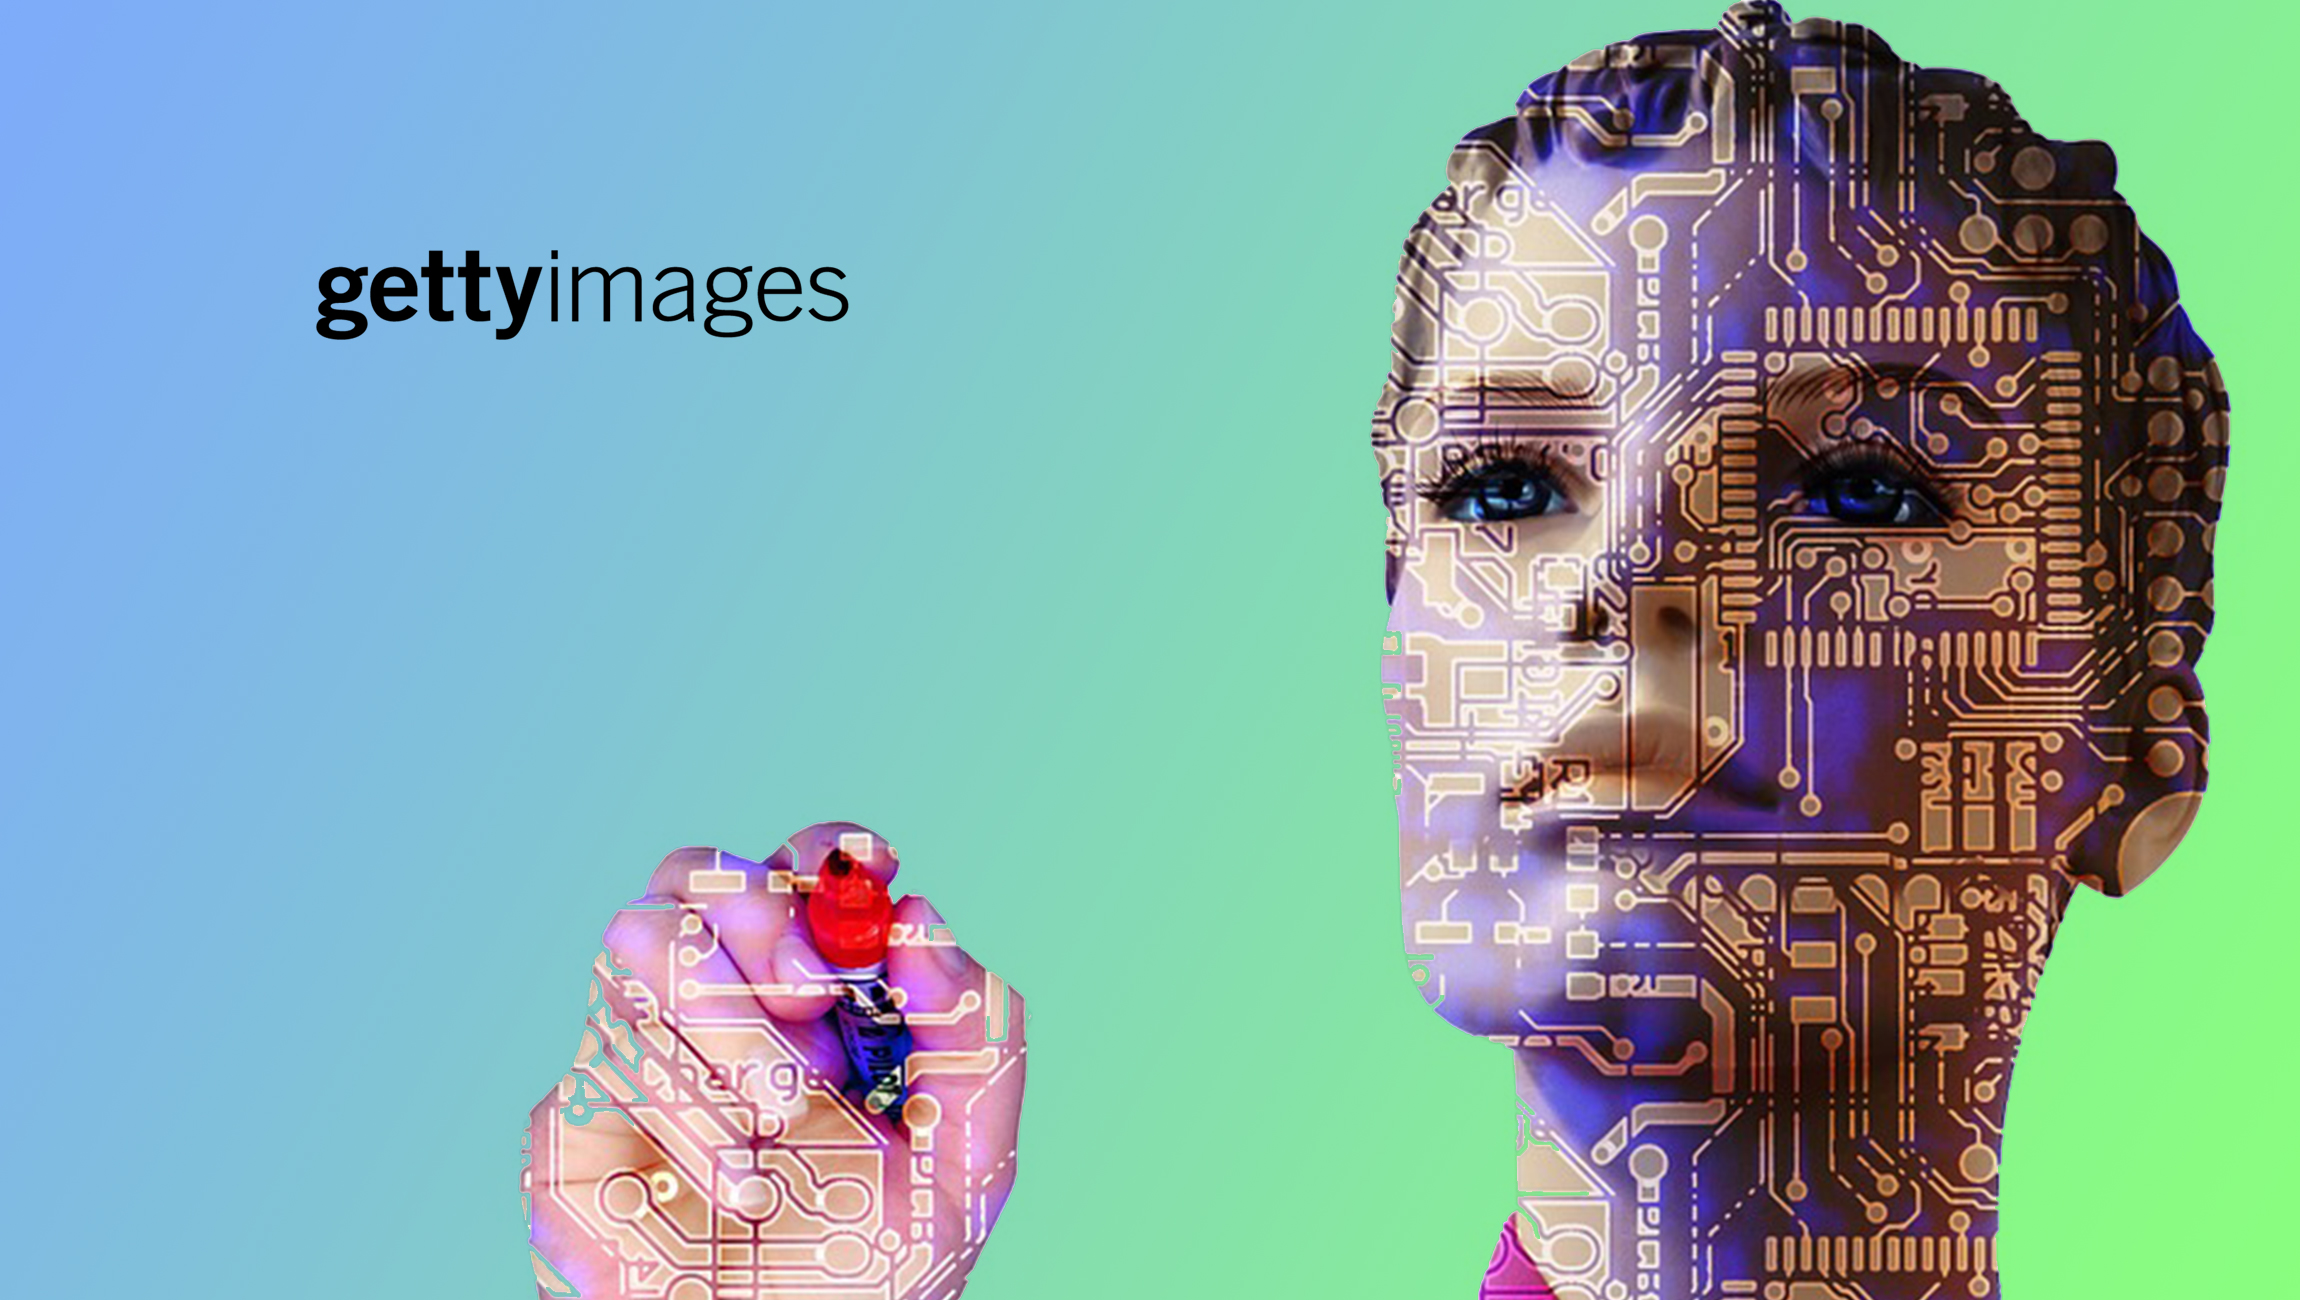 Getty Images And Cortex Partner On Artificial Intelligence Platform For Creatives